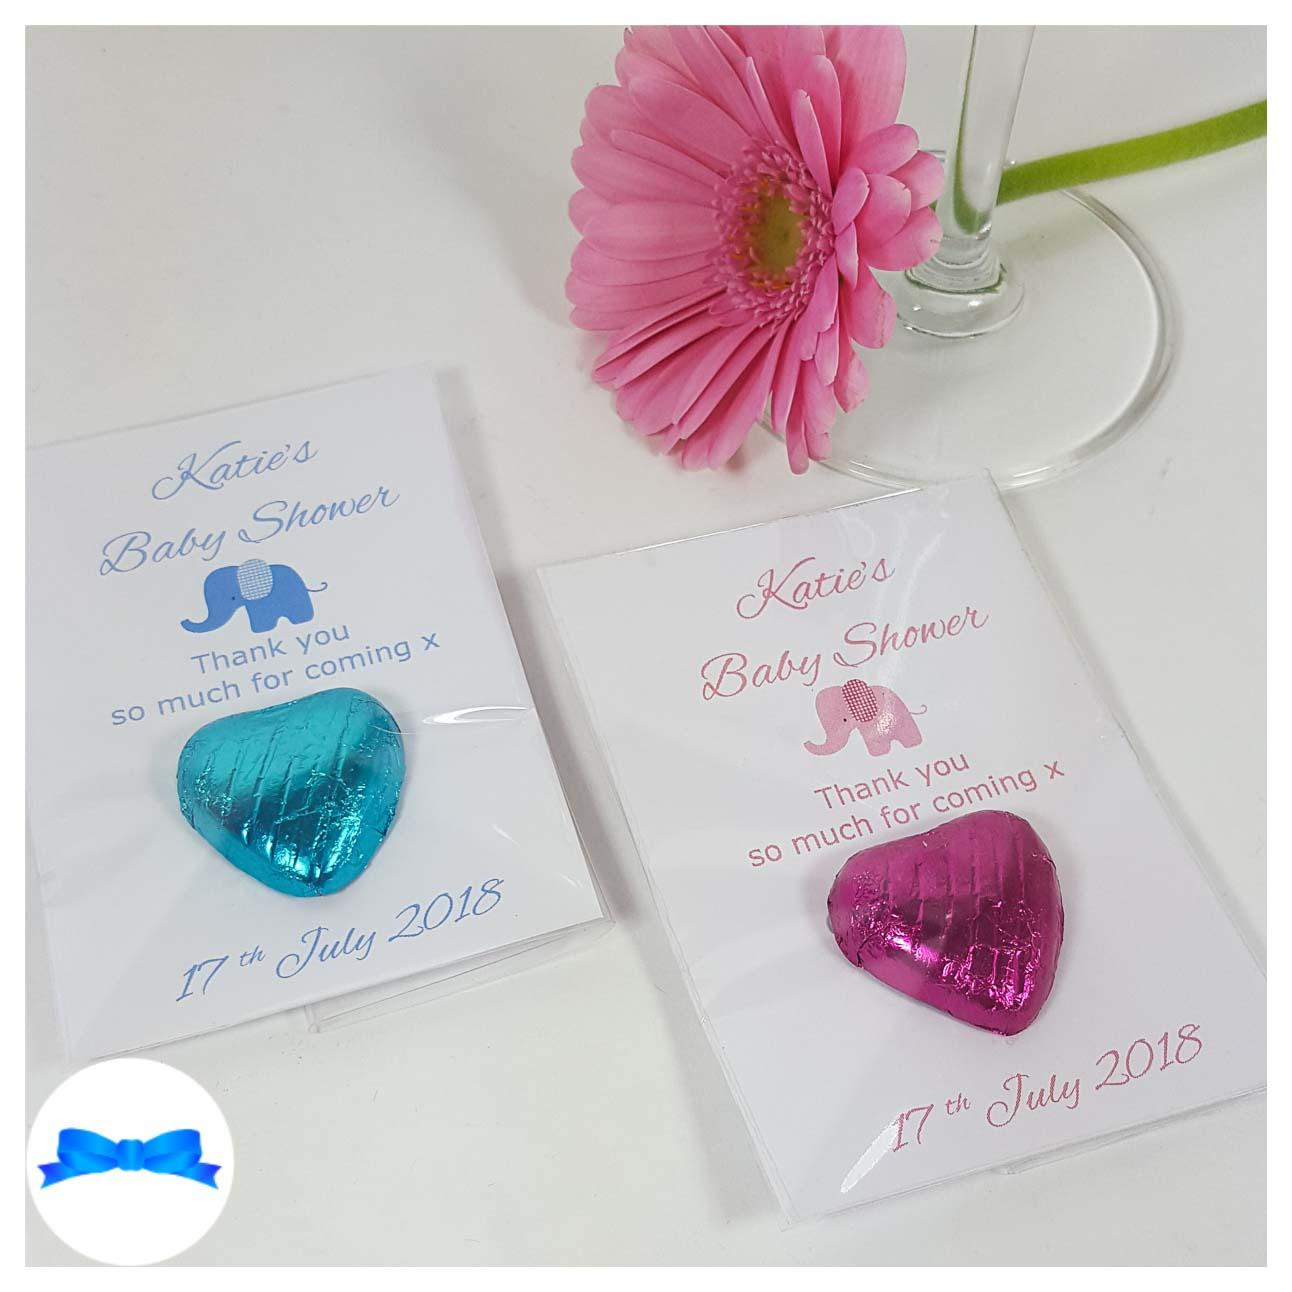 Baby shower chocolate heart favours with pink and blue toy elephants